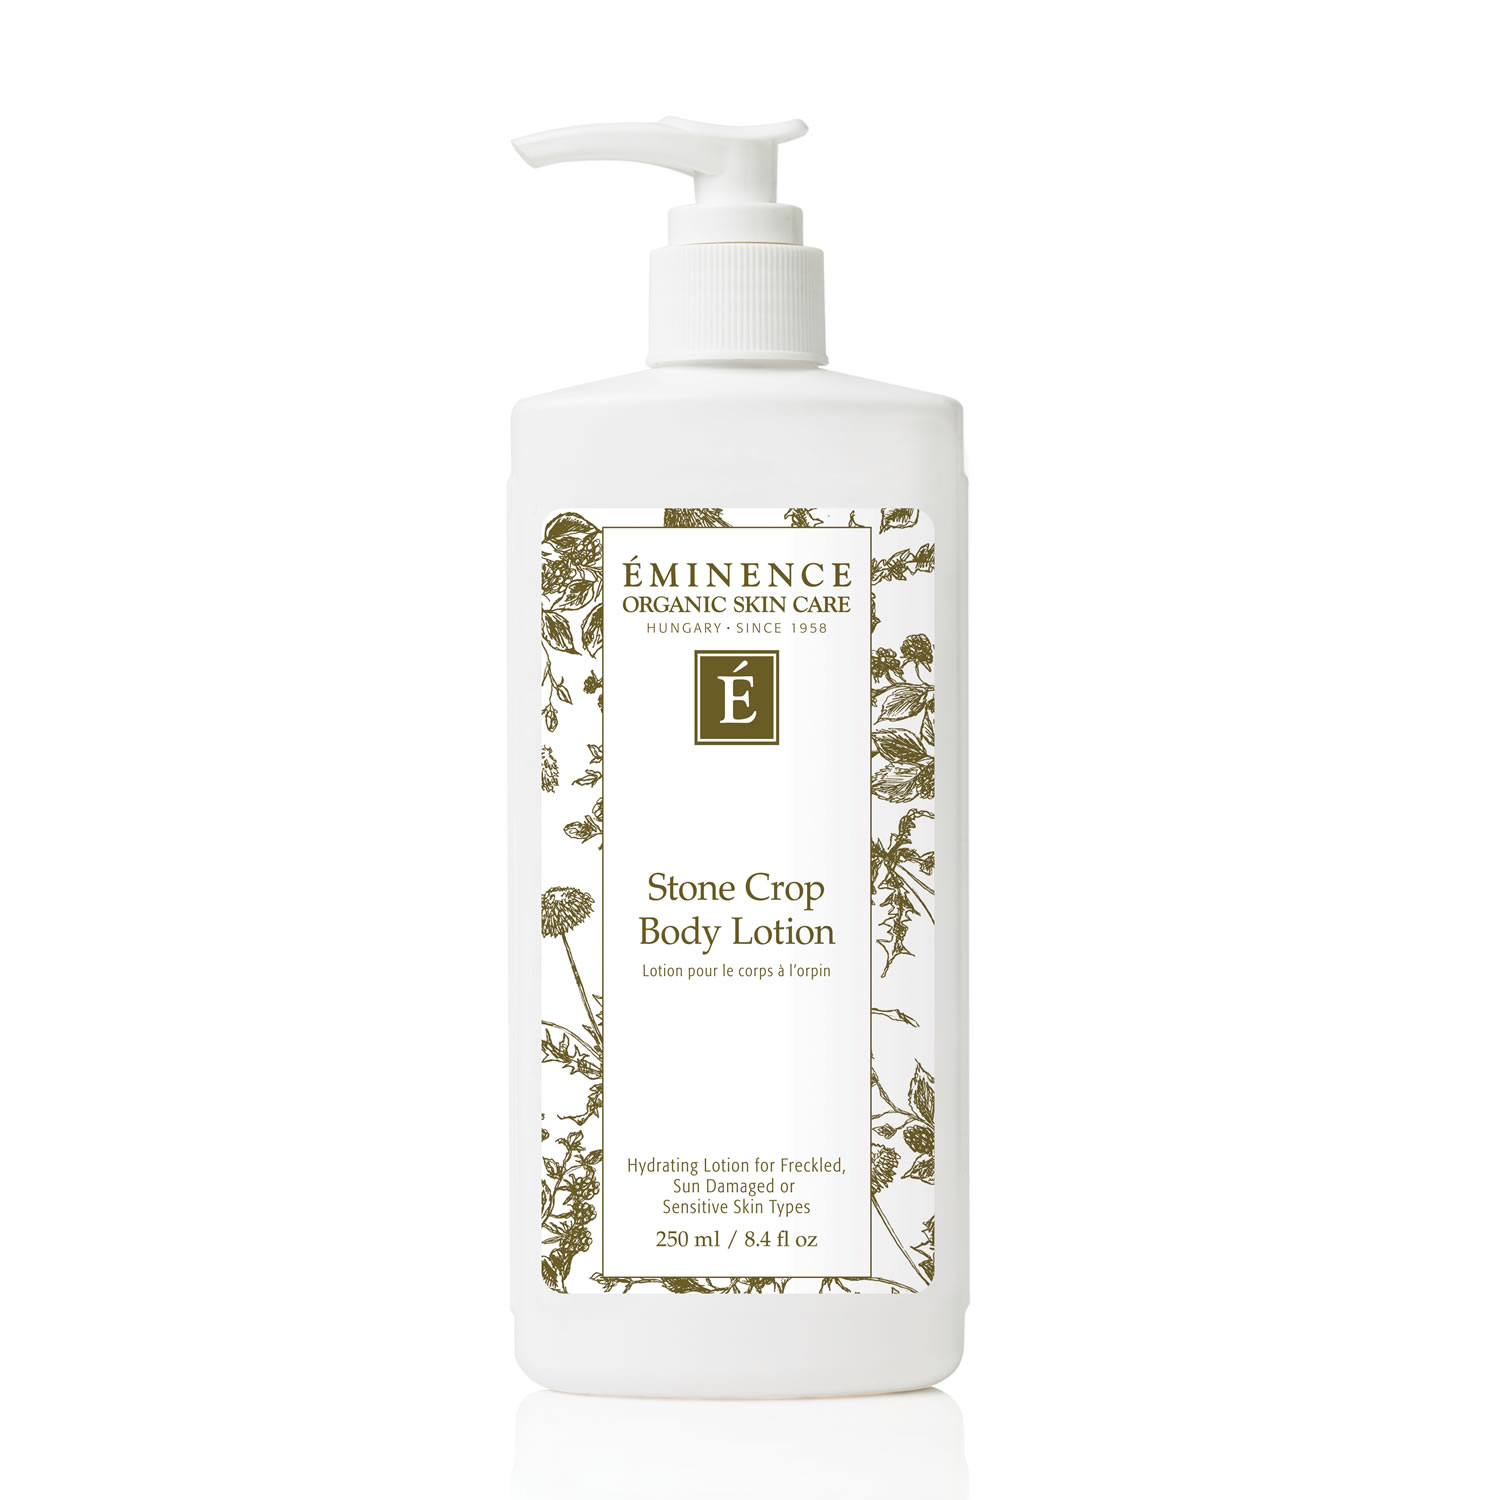 Eminence Stone Crop Body Lotion (250 ml / 8.4 fl oz)